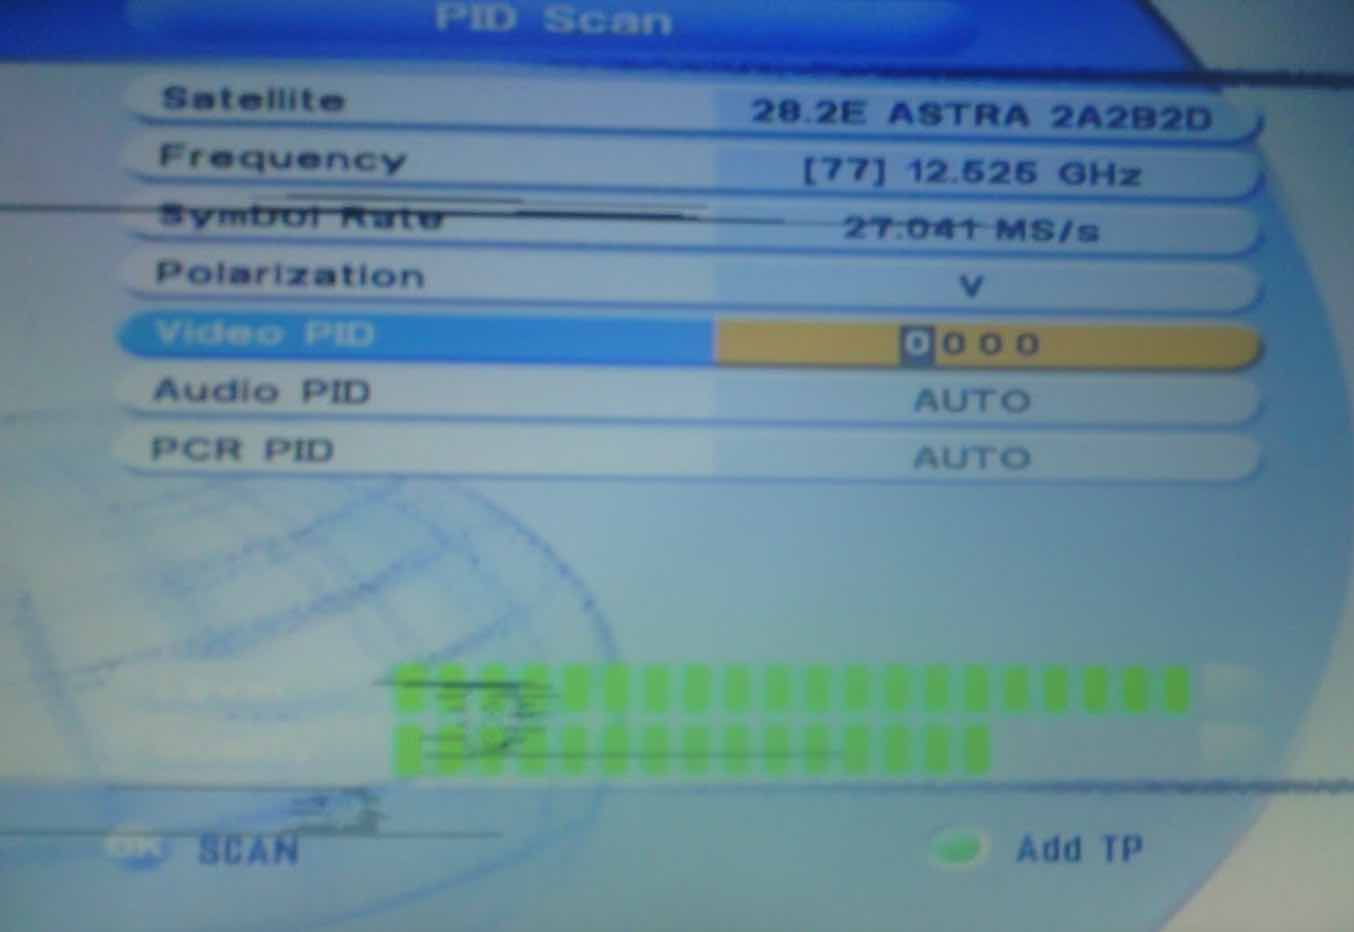 pid scan for decoders